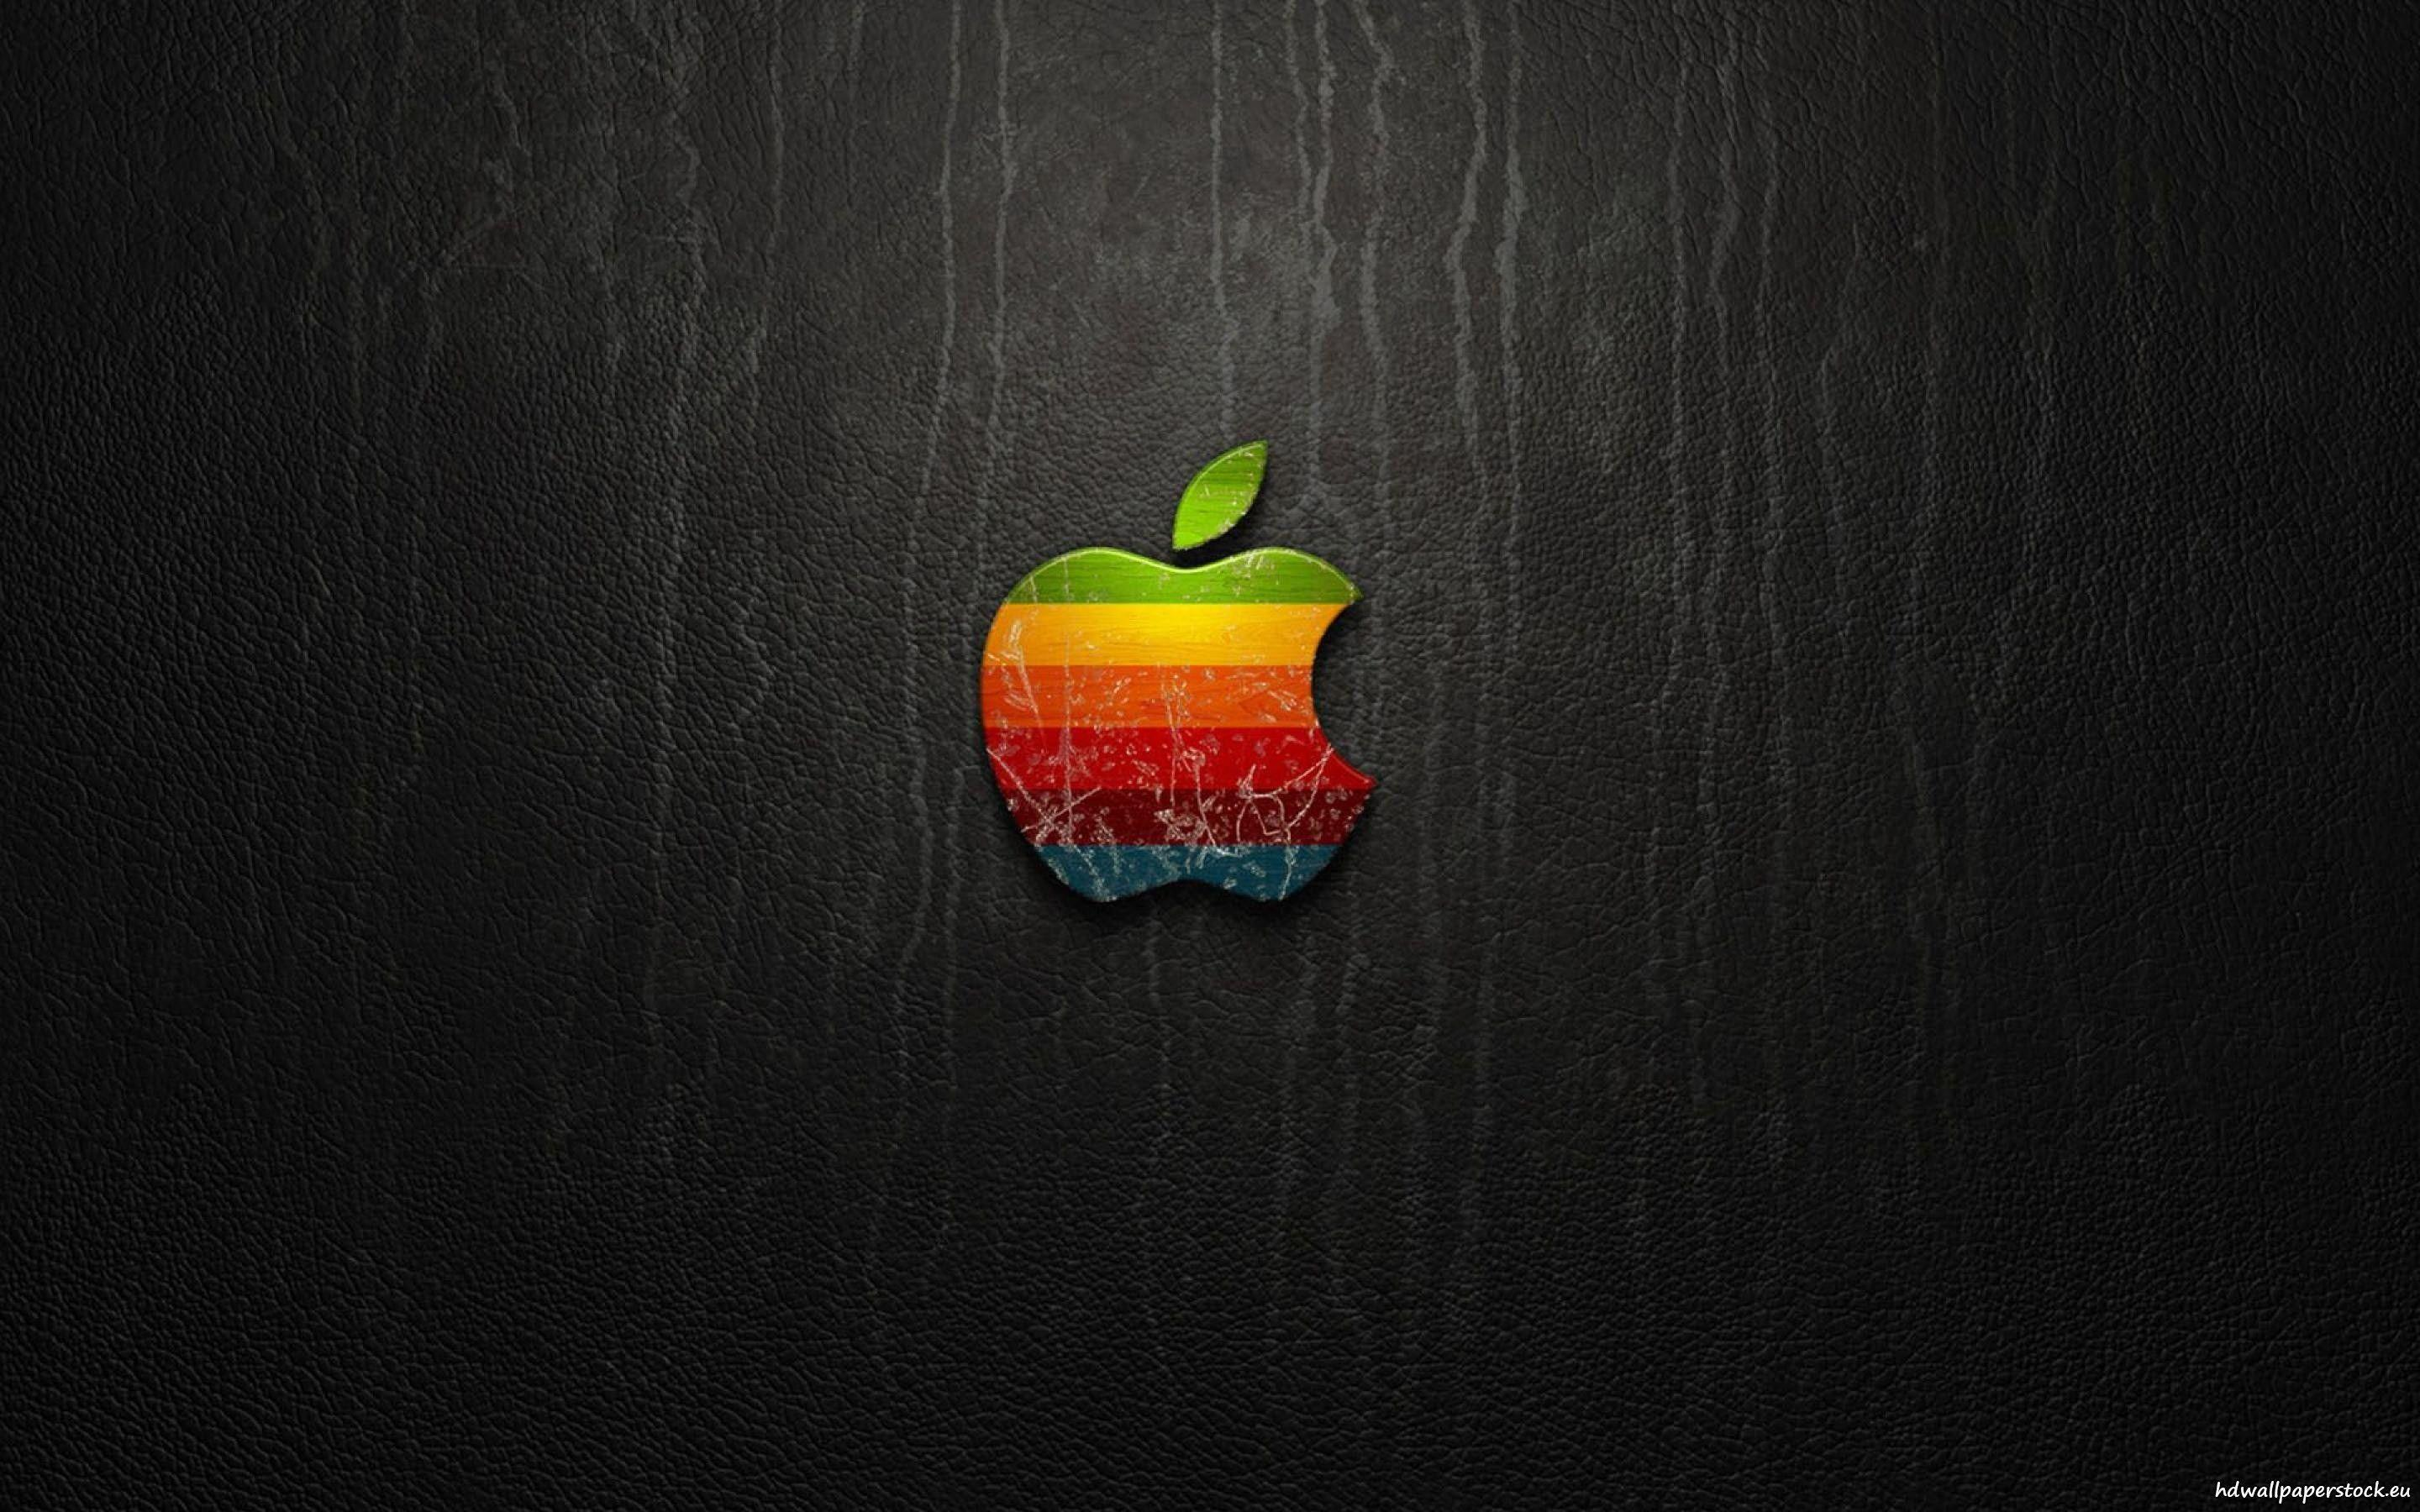 apple logo wallpaper hd 1080p for iphone 7